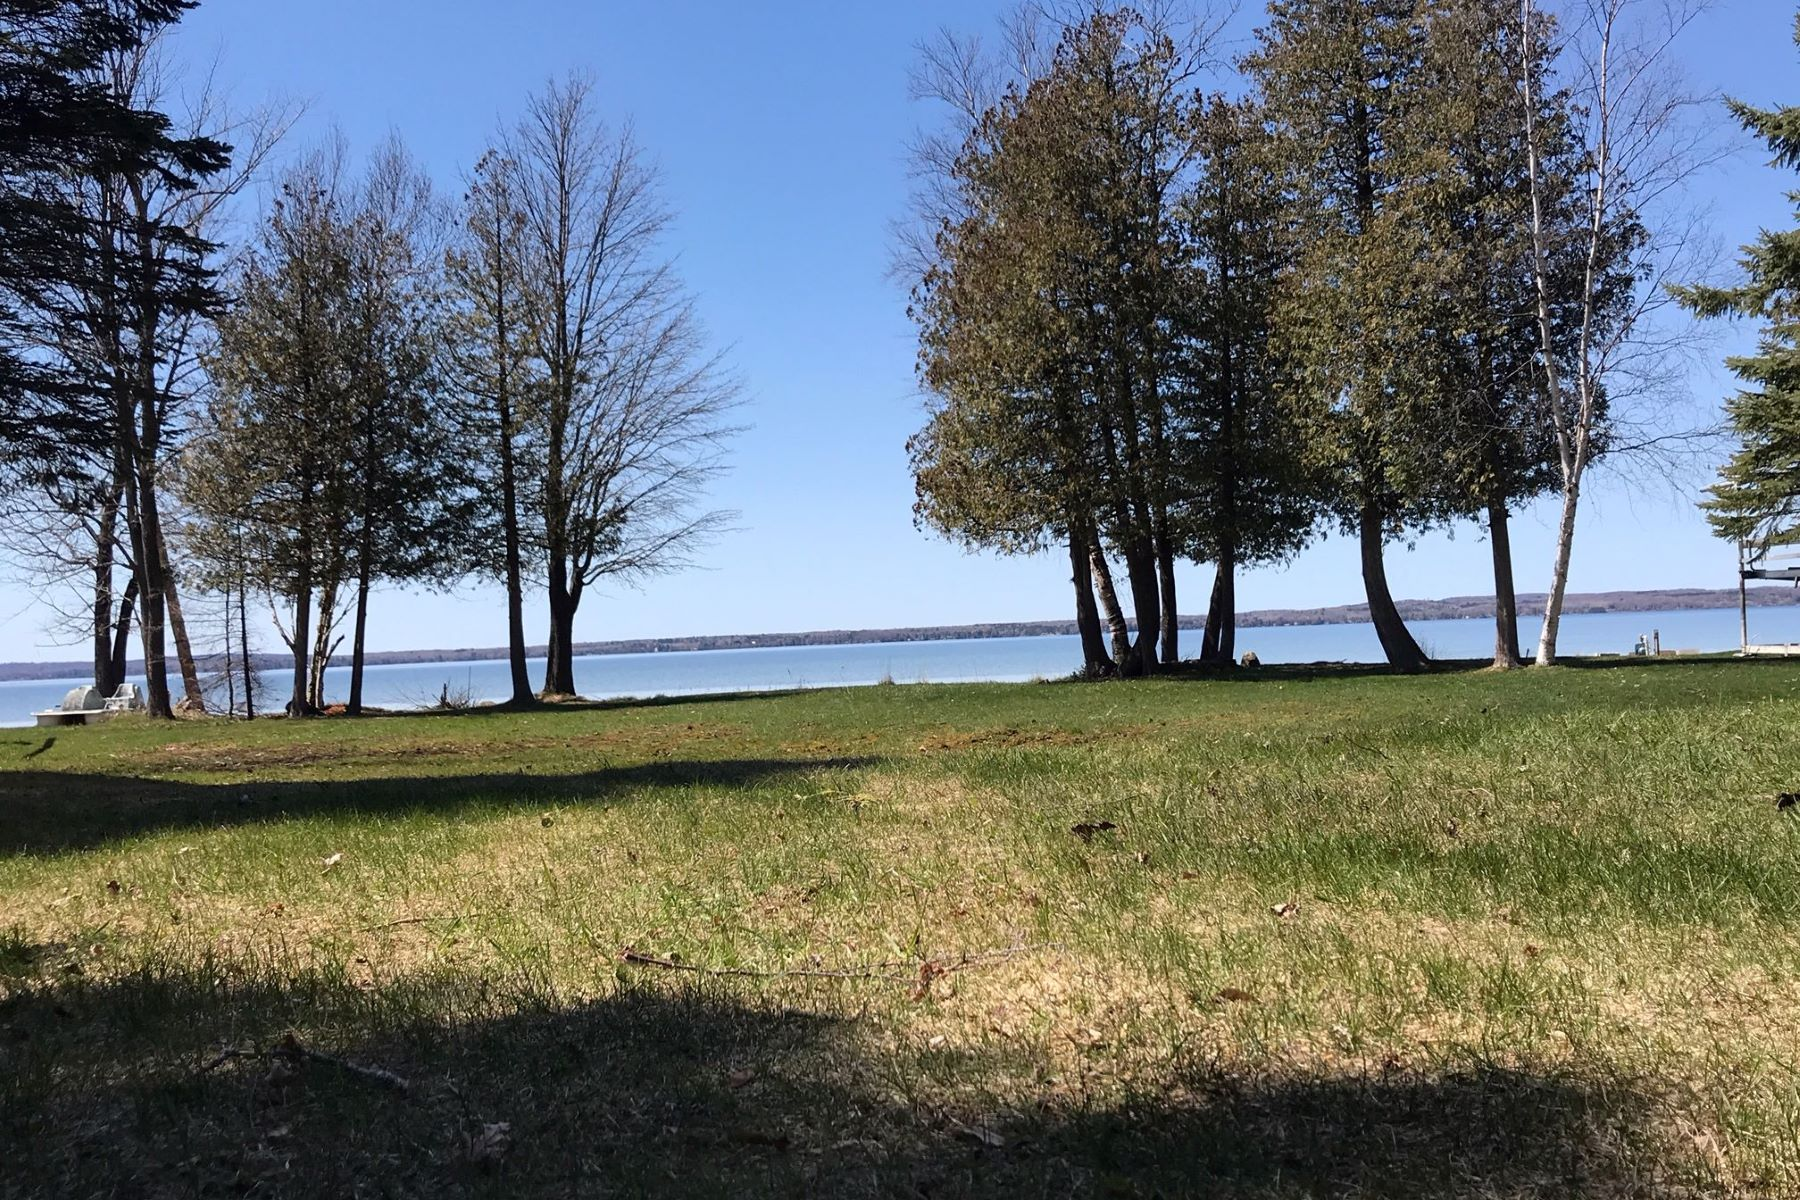 Land for Sale at More than 70 feet of Mullet Lake frontage 5185 Tromble Drive, Cheboygan, Michigan 49721 United States